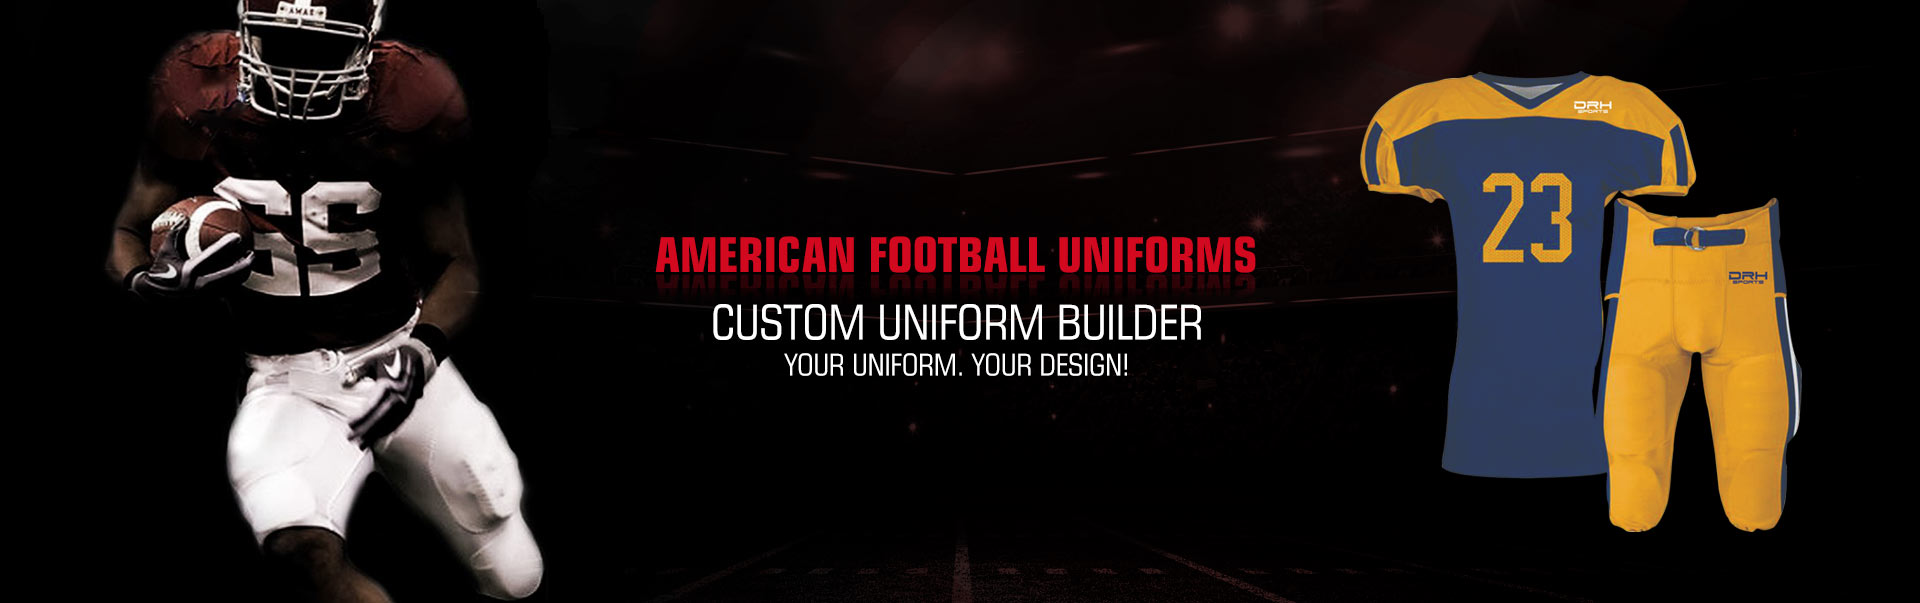 American Football Uniform Wholesaler, Suppliers in Aurora